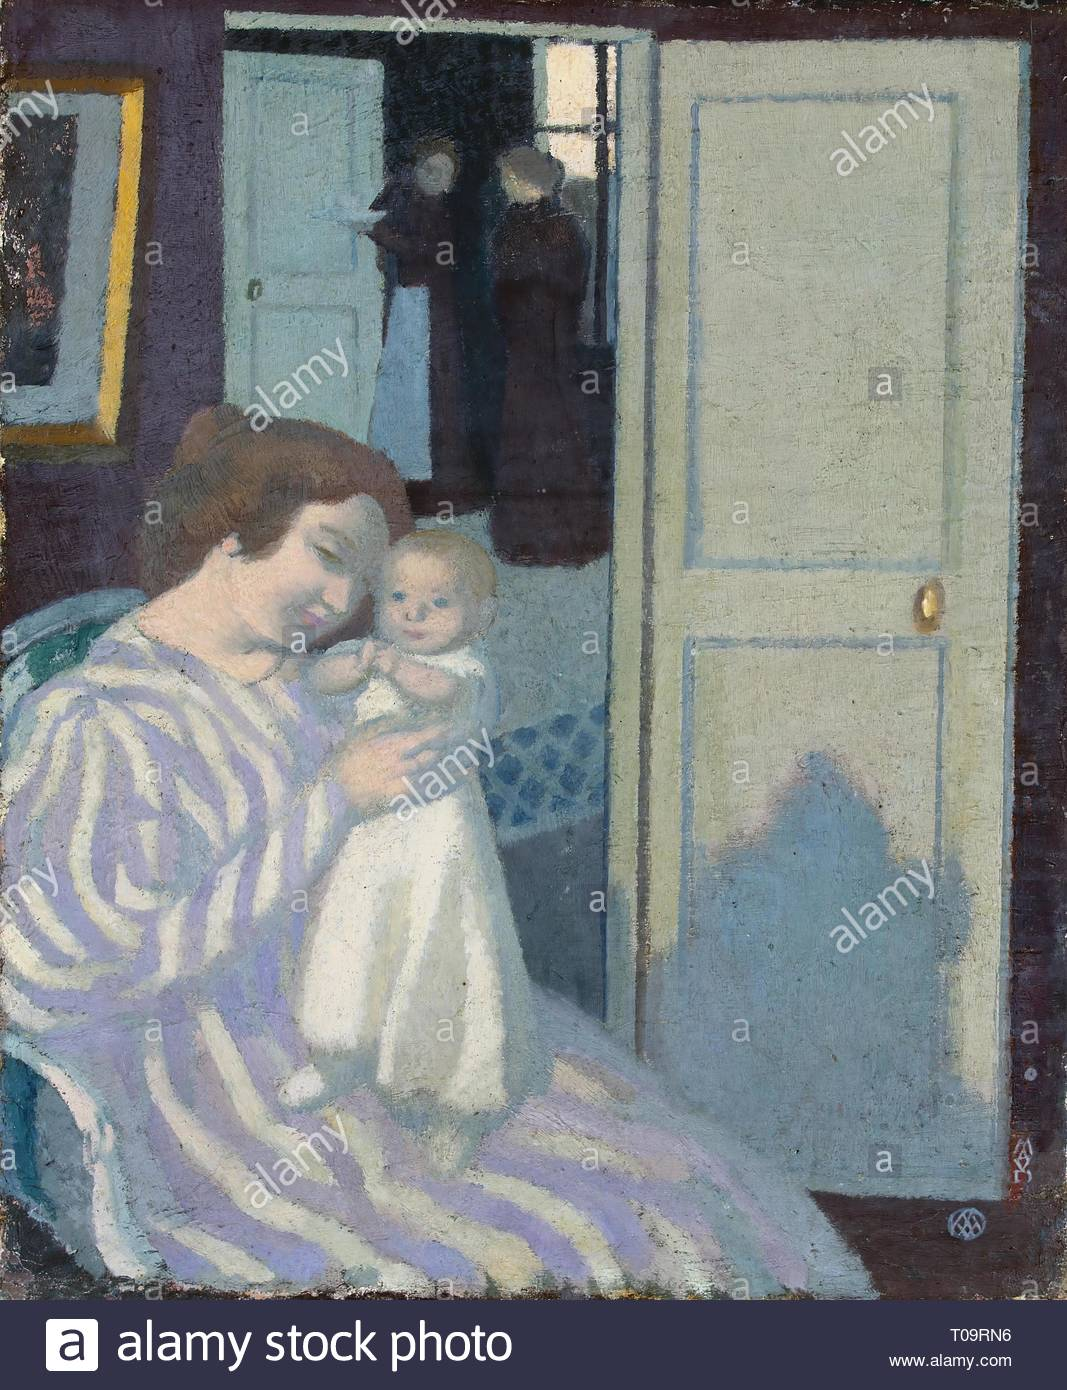 'Mother and Child'. France, 1895. Dimensions: 45x38,5 cm. Museum: State Hermitage, St. Petersburg. Author: MAURICE DENIS . Maurice Denis. - Stock Image